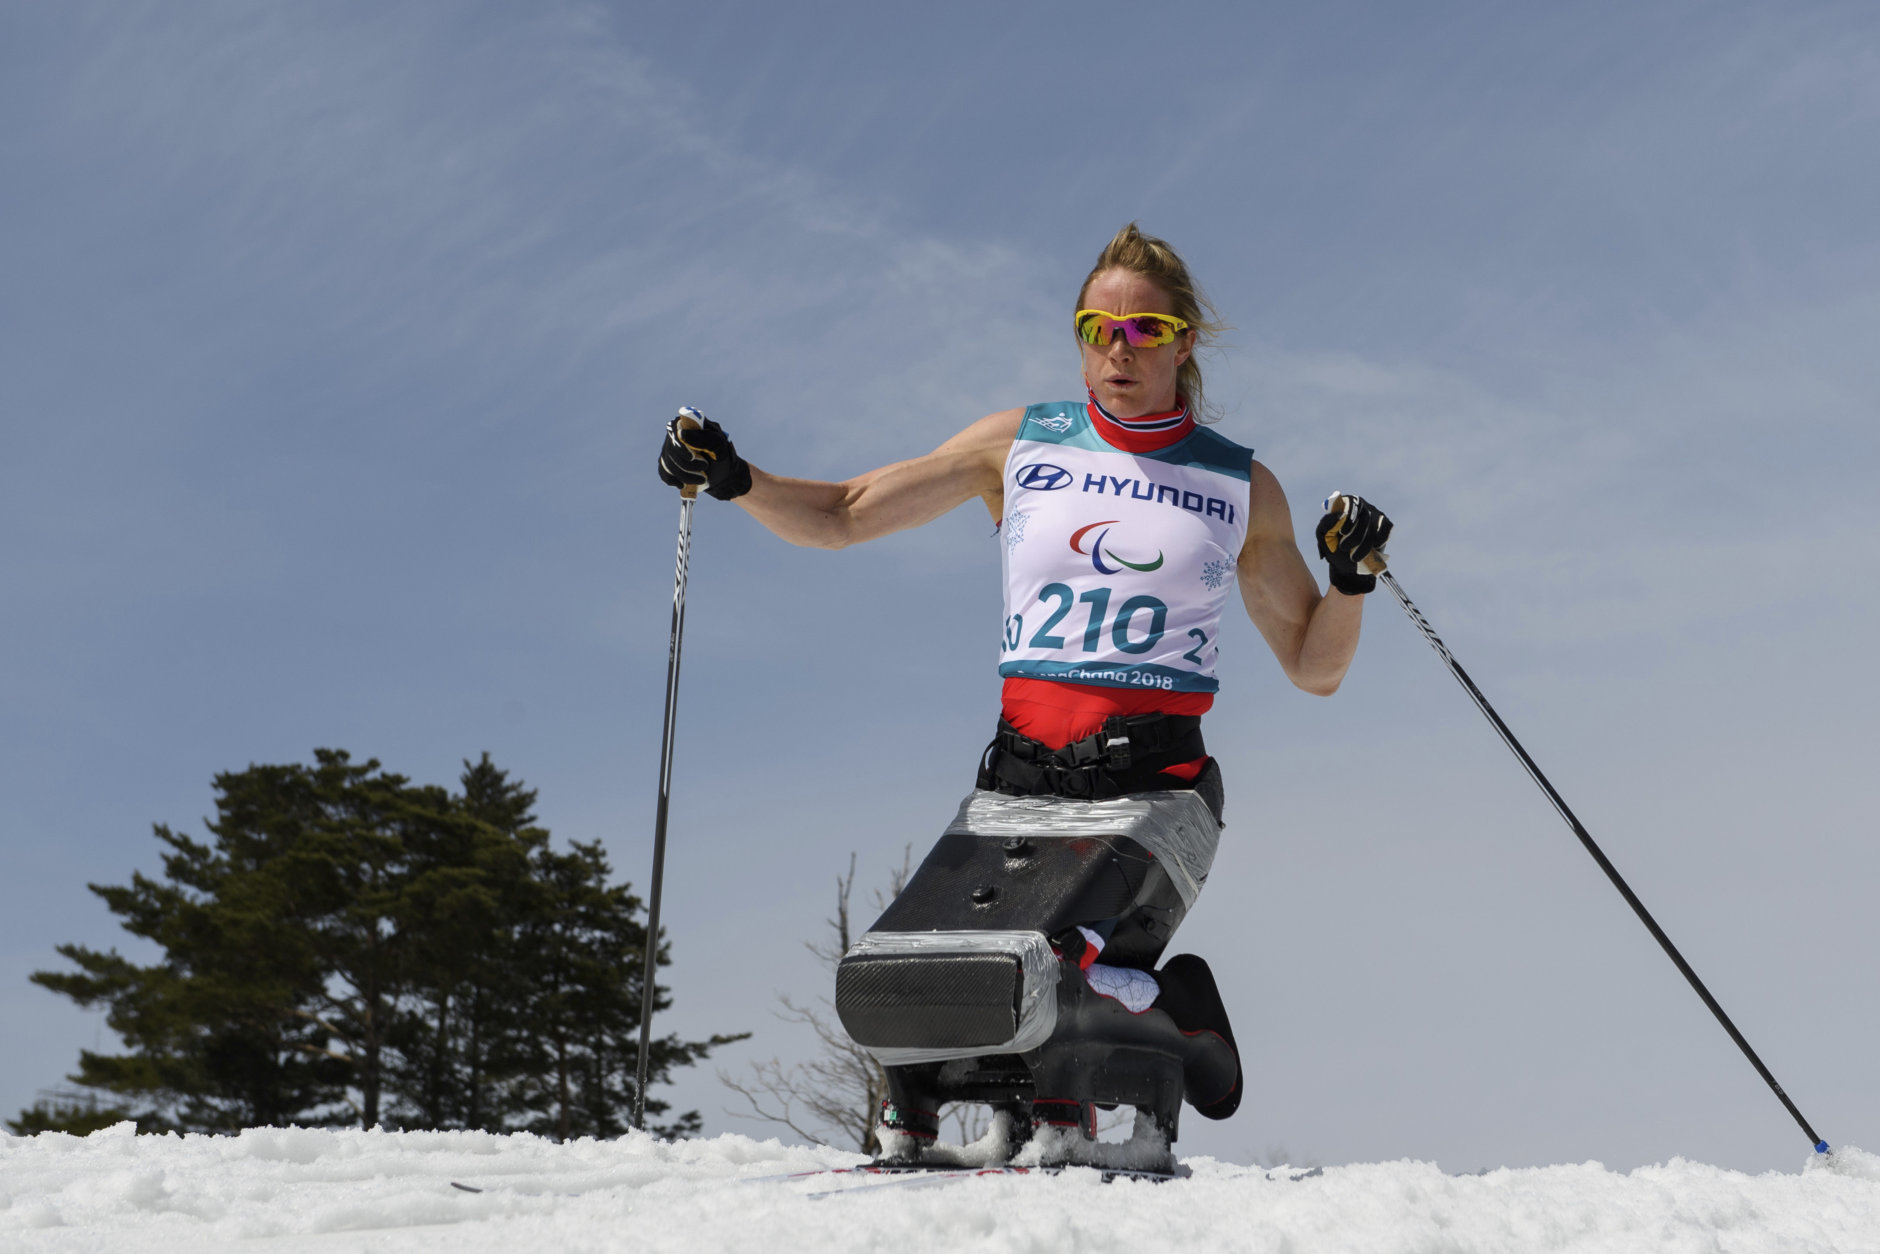 Birgit Skarstein NOR competes during the Cross Country Skiing Women's Sitting 5km at the Alpensia Biathlon Centre in Pyeongchang, South Korea at the 2018 Winter Paralympics Saturday, March 17, 2018. (Thomas Lovelock/OIS/IOC via AP)